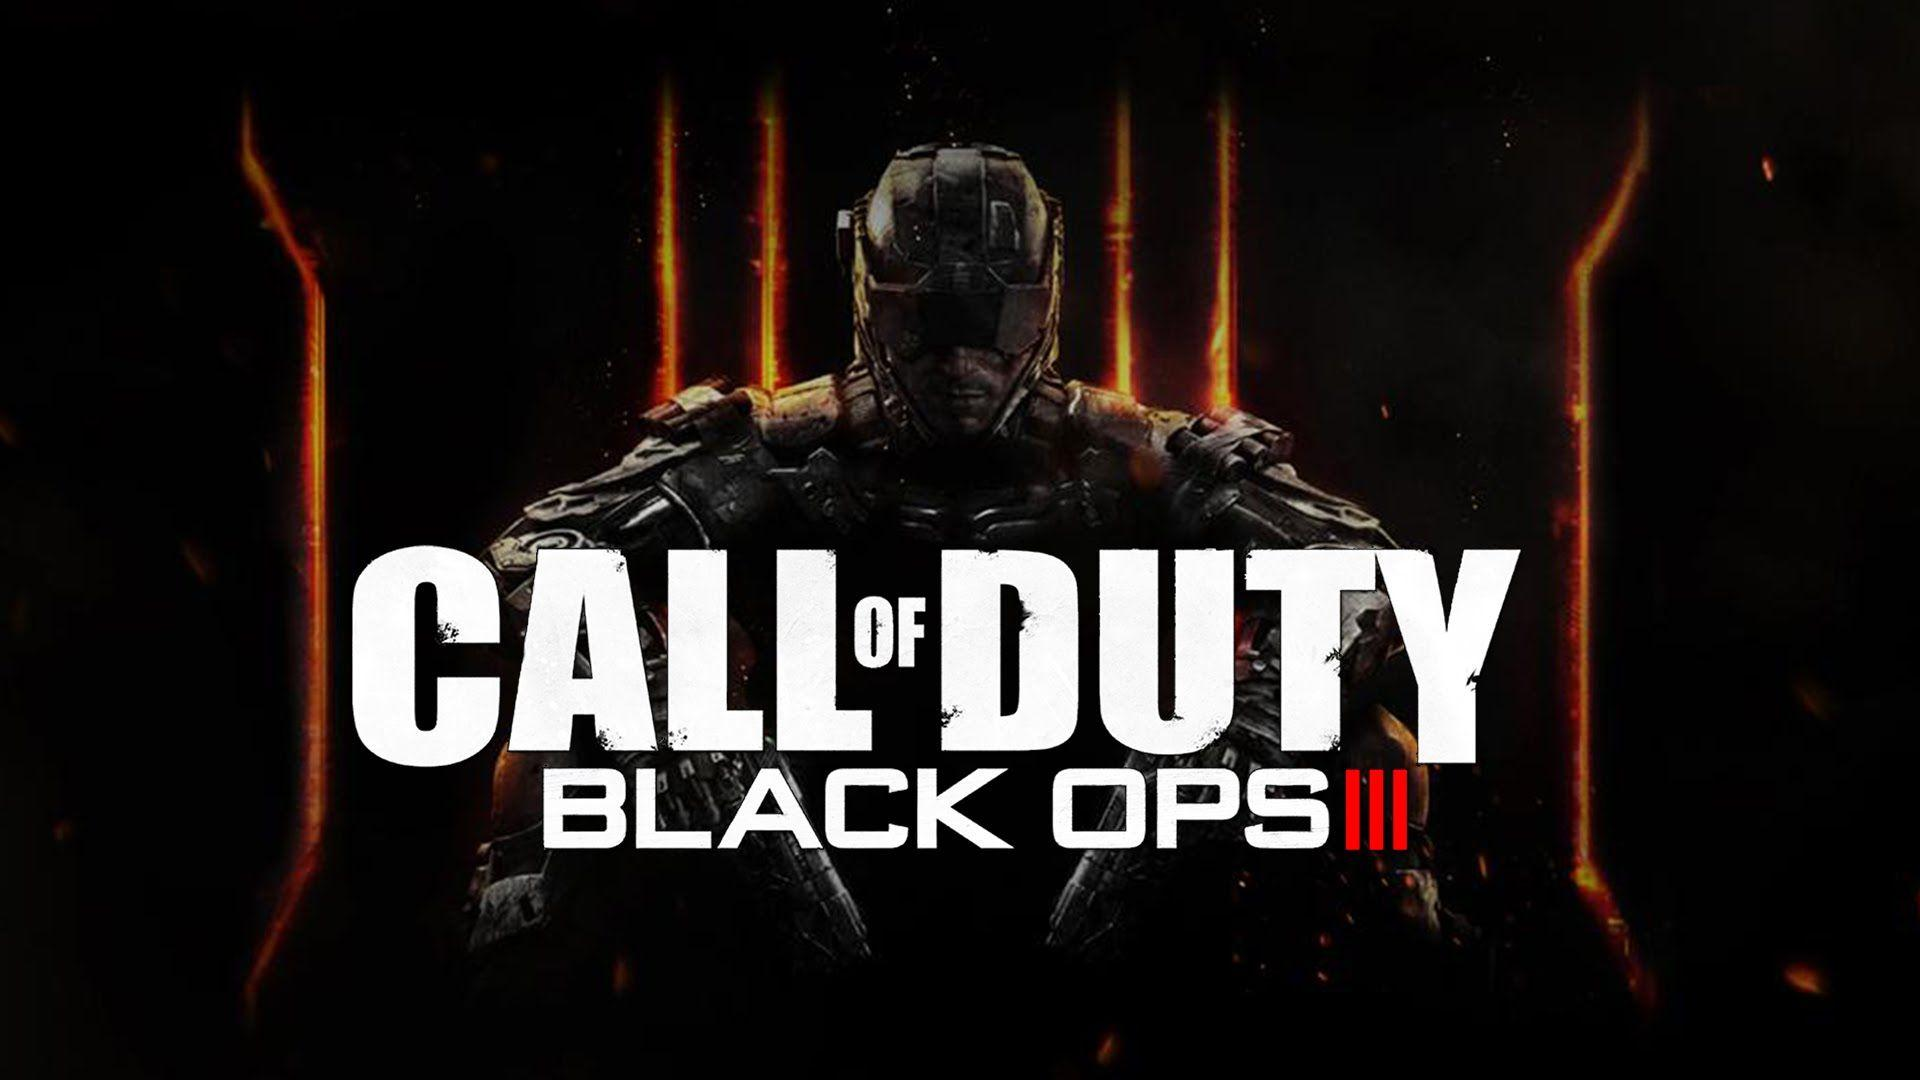 Call-of-duty-black-ops-3-wallpaper-3t - Tops Wallpapers